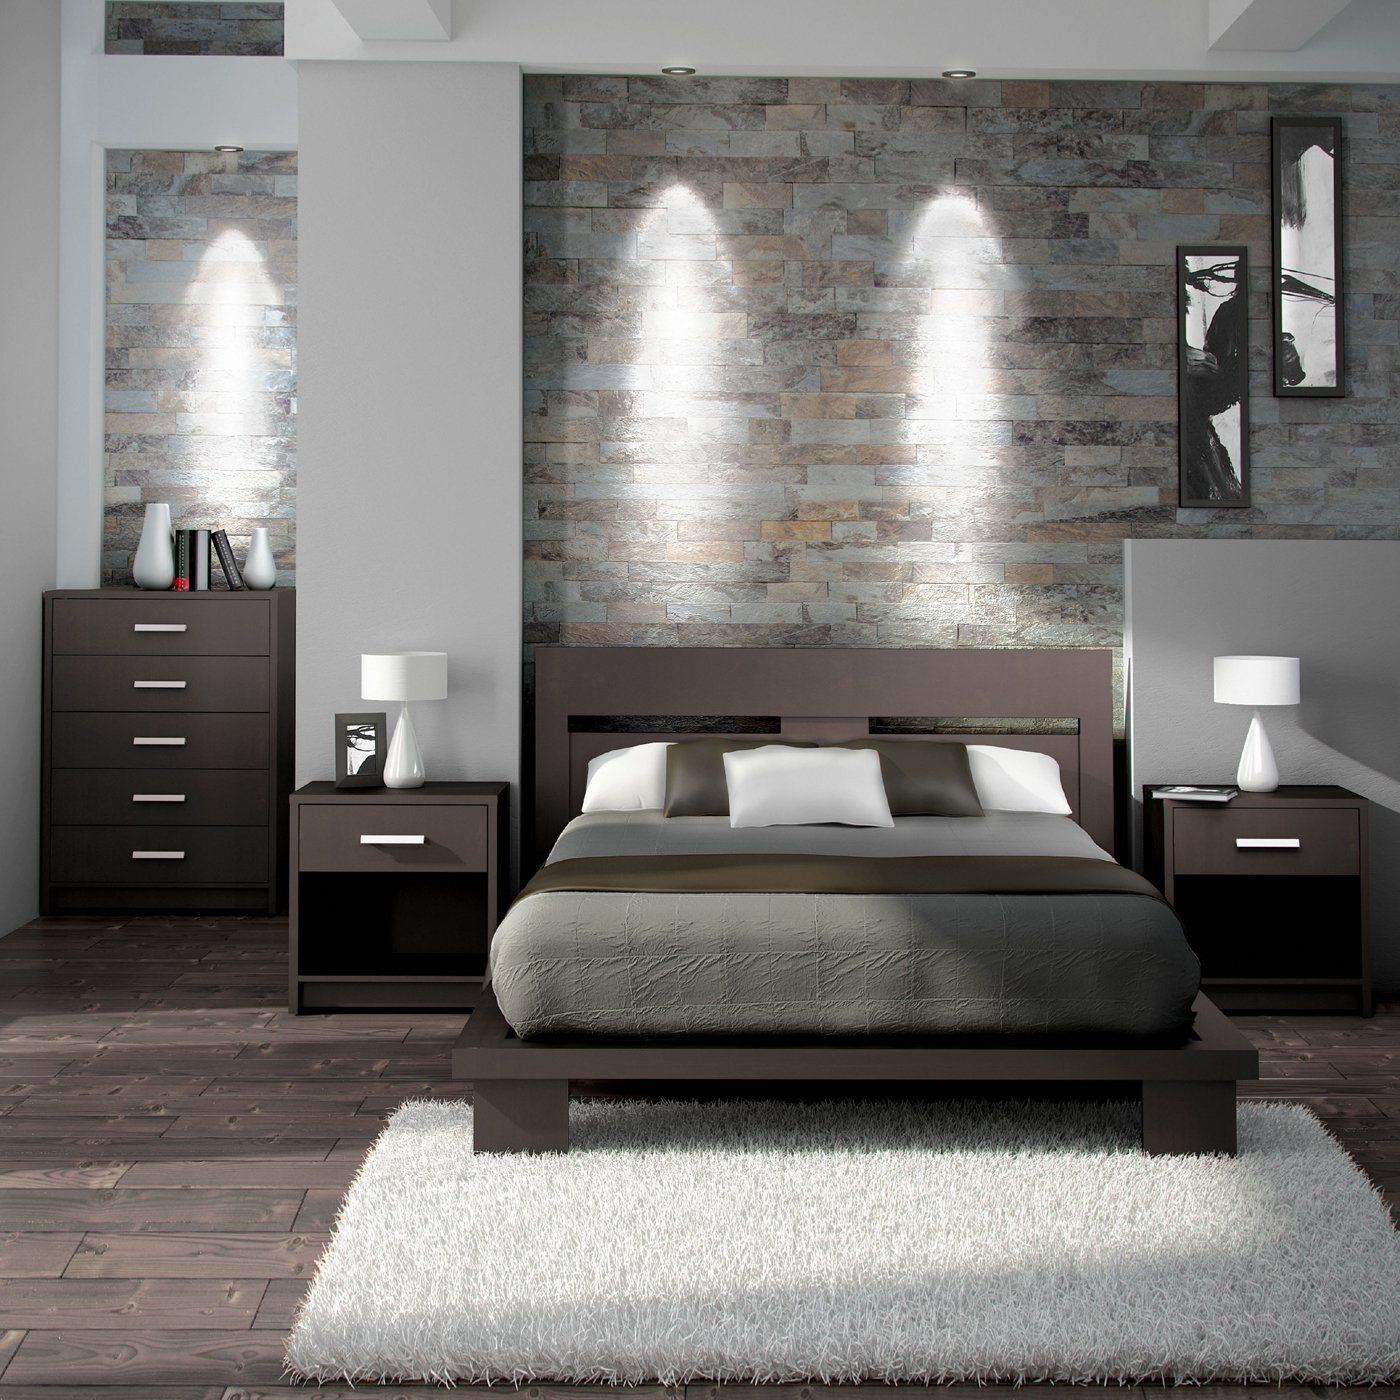 Ultra Modern Bedroom Interior Design Bedroom Colour Ideas 2014 Latest Bedroom Interior Design Trends Good Bedroom Colour Schemes: Black Bedroom Ideas, Inspiration For Master Bedroom